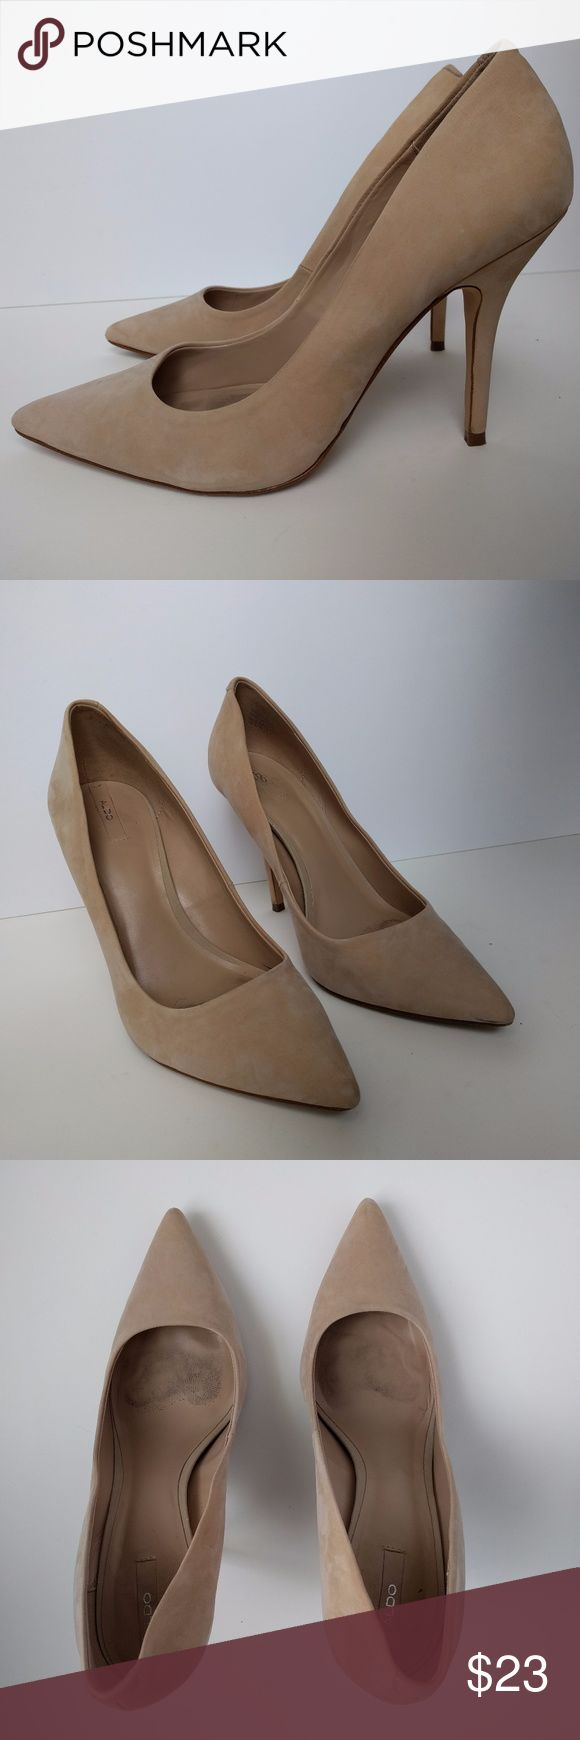 Aldo Leather Nude Pumps Heels Haollan Bone Size 10 These Aldo Suede Nude Pumps have only been worn a couple of times and are in great condition   Style: Haollan  Size: 10 (runs small–fits like an 8.5/9)  Very high heel - 4 inches  Color: Bone (nude/light tan)  Leather upper  Original box included Aldo Shoes Heels